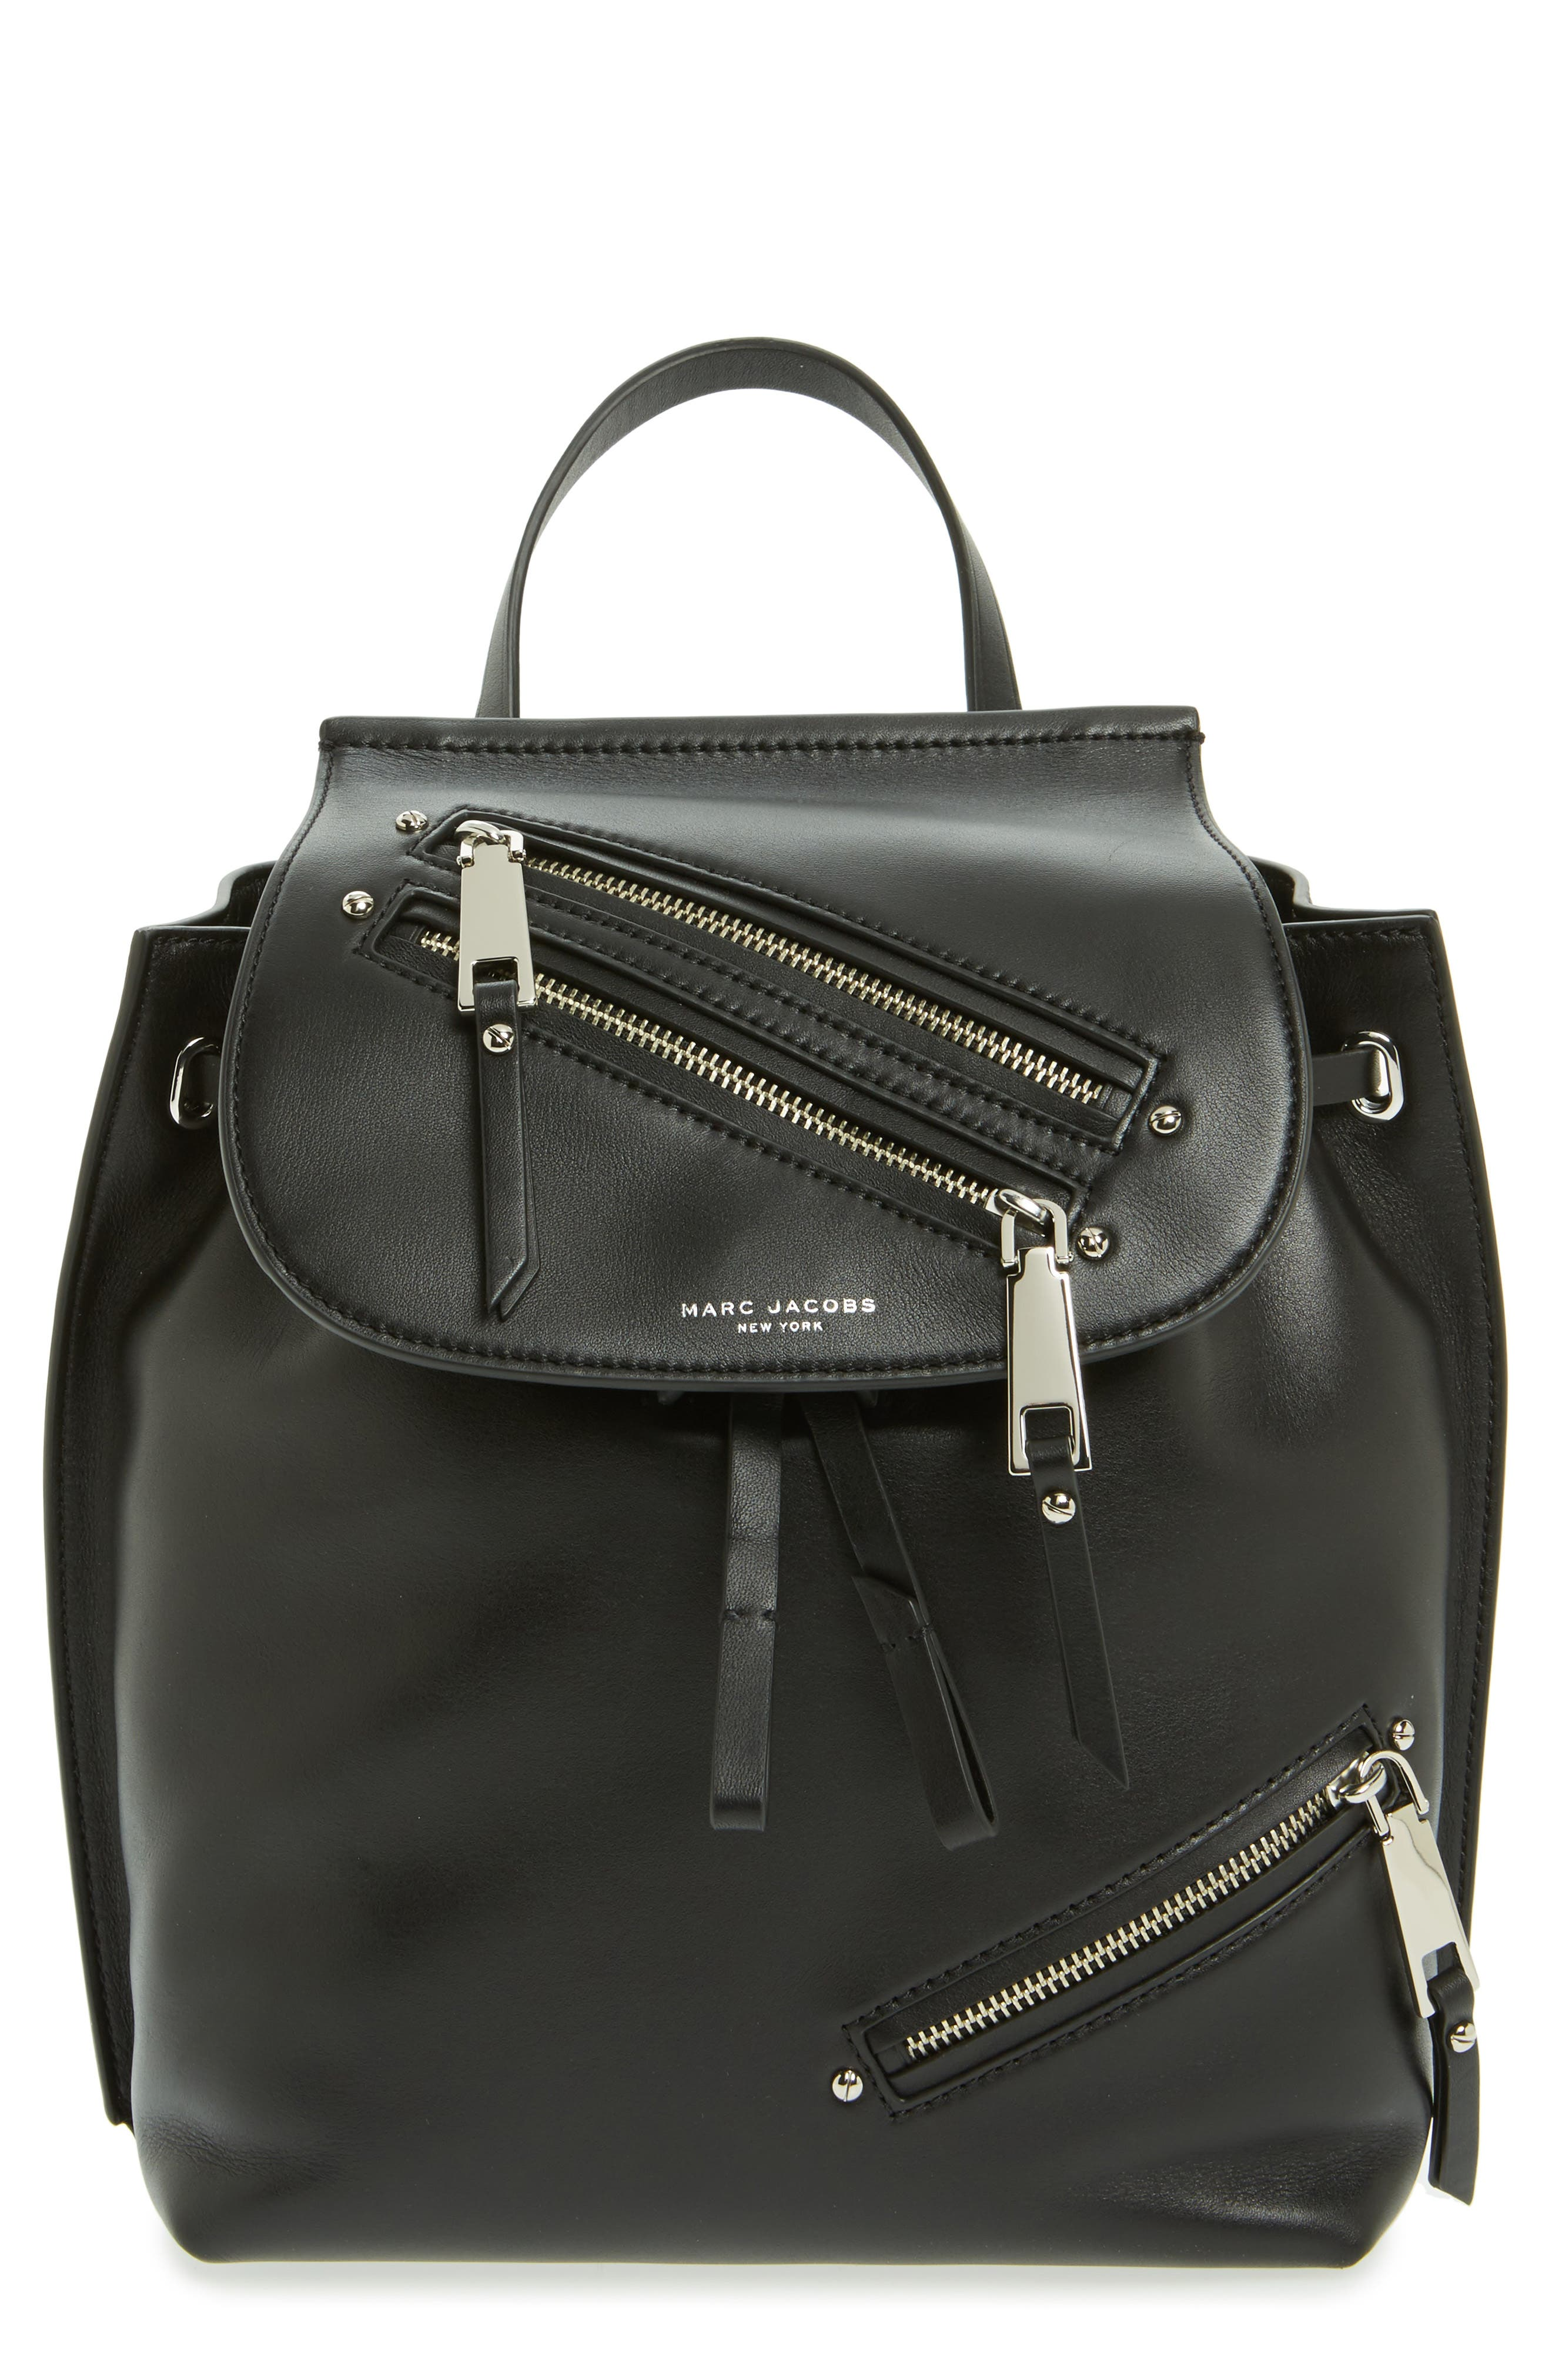 Alternate Image 1 Selected - MARC JACOBS Zip Leather Backpack